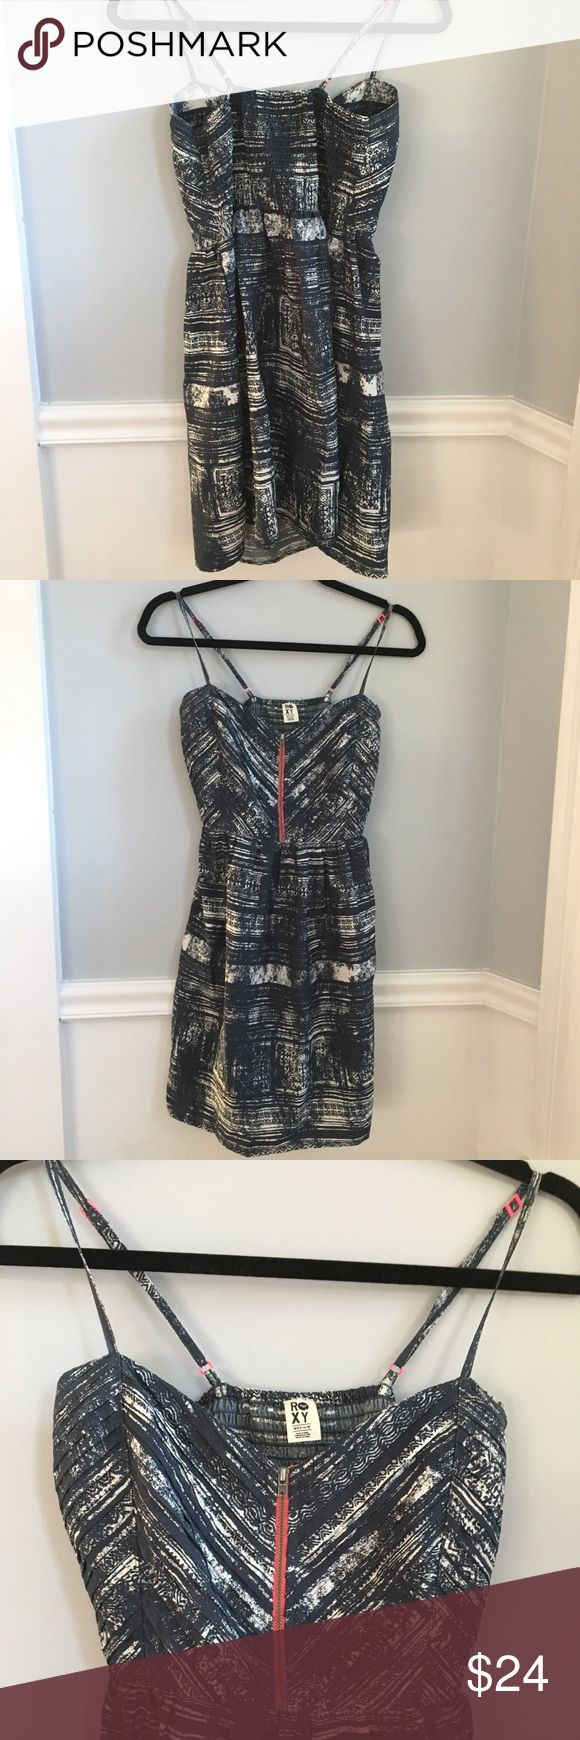 ROXY Tribal Abstract  Print Mini Strappy Dress M Adorable abstract patterned dress with fitted bodice and gathered waist. Pleated detail on bodice. Darker grey blue and white with hot pink hardware and trim detail. Size Medium. No issues to note. Great preloved condition. Pls feel free to make a reasonable offer. Bundle and auto save 15% on 2+ bundles Roxy Dresses Mini